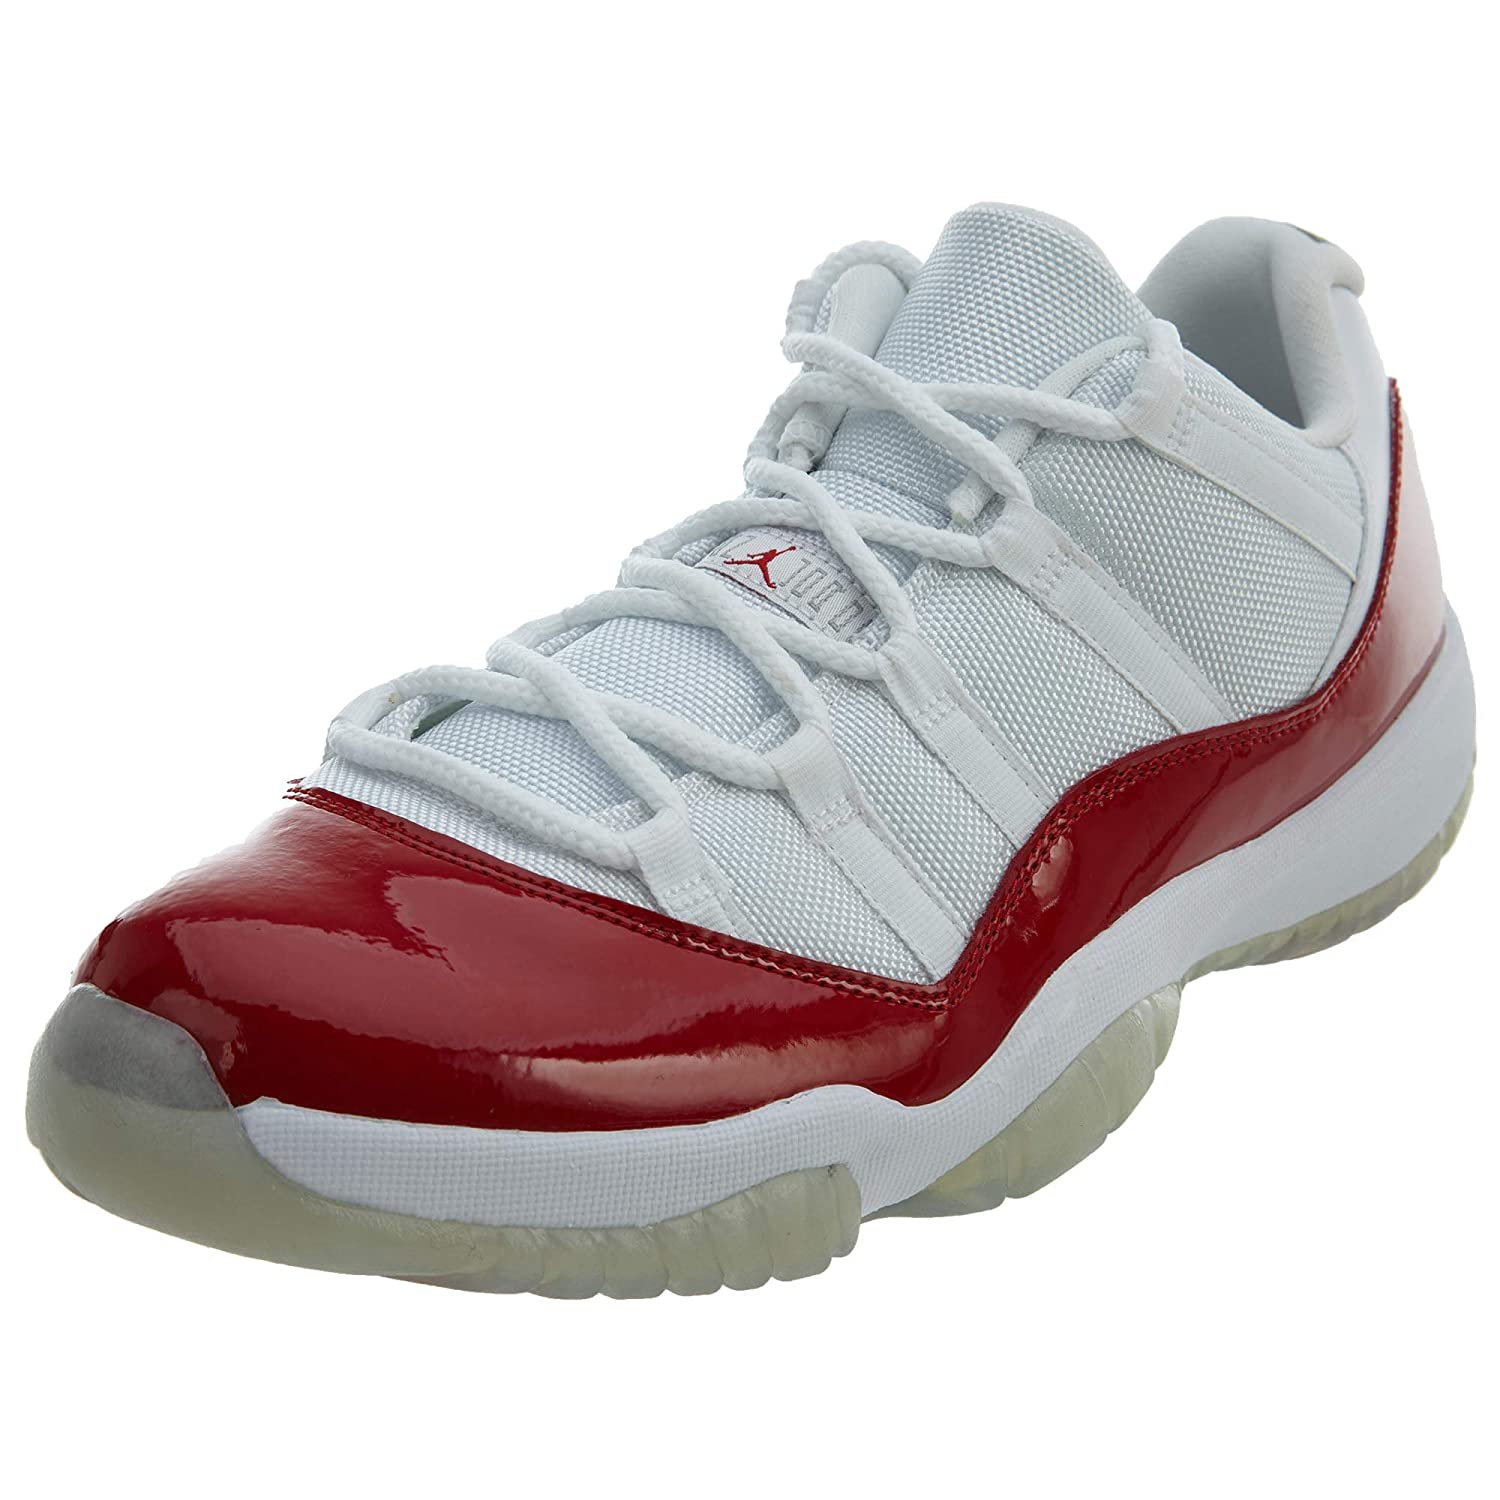 39ddc66678a Nike Men s Air Jordan 11 Retro Low Basketball Shoes  Amazon.co.uk  Shoes    Bags